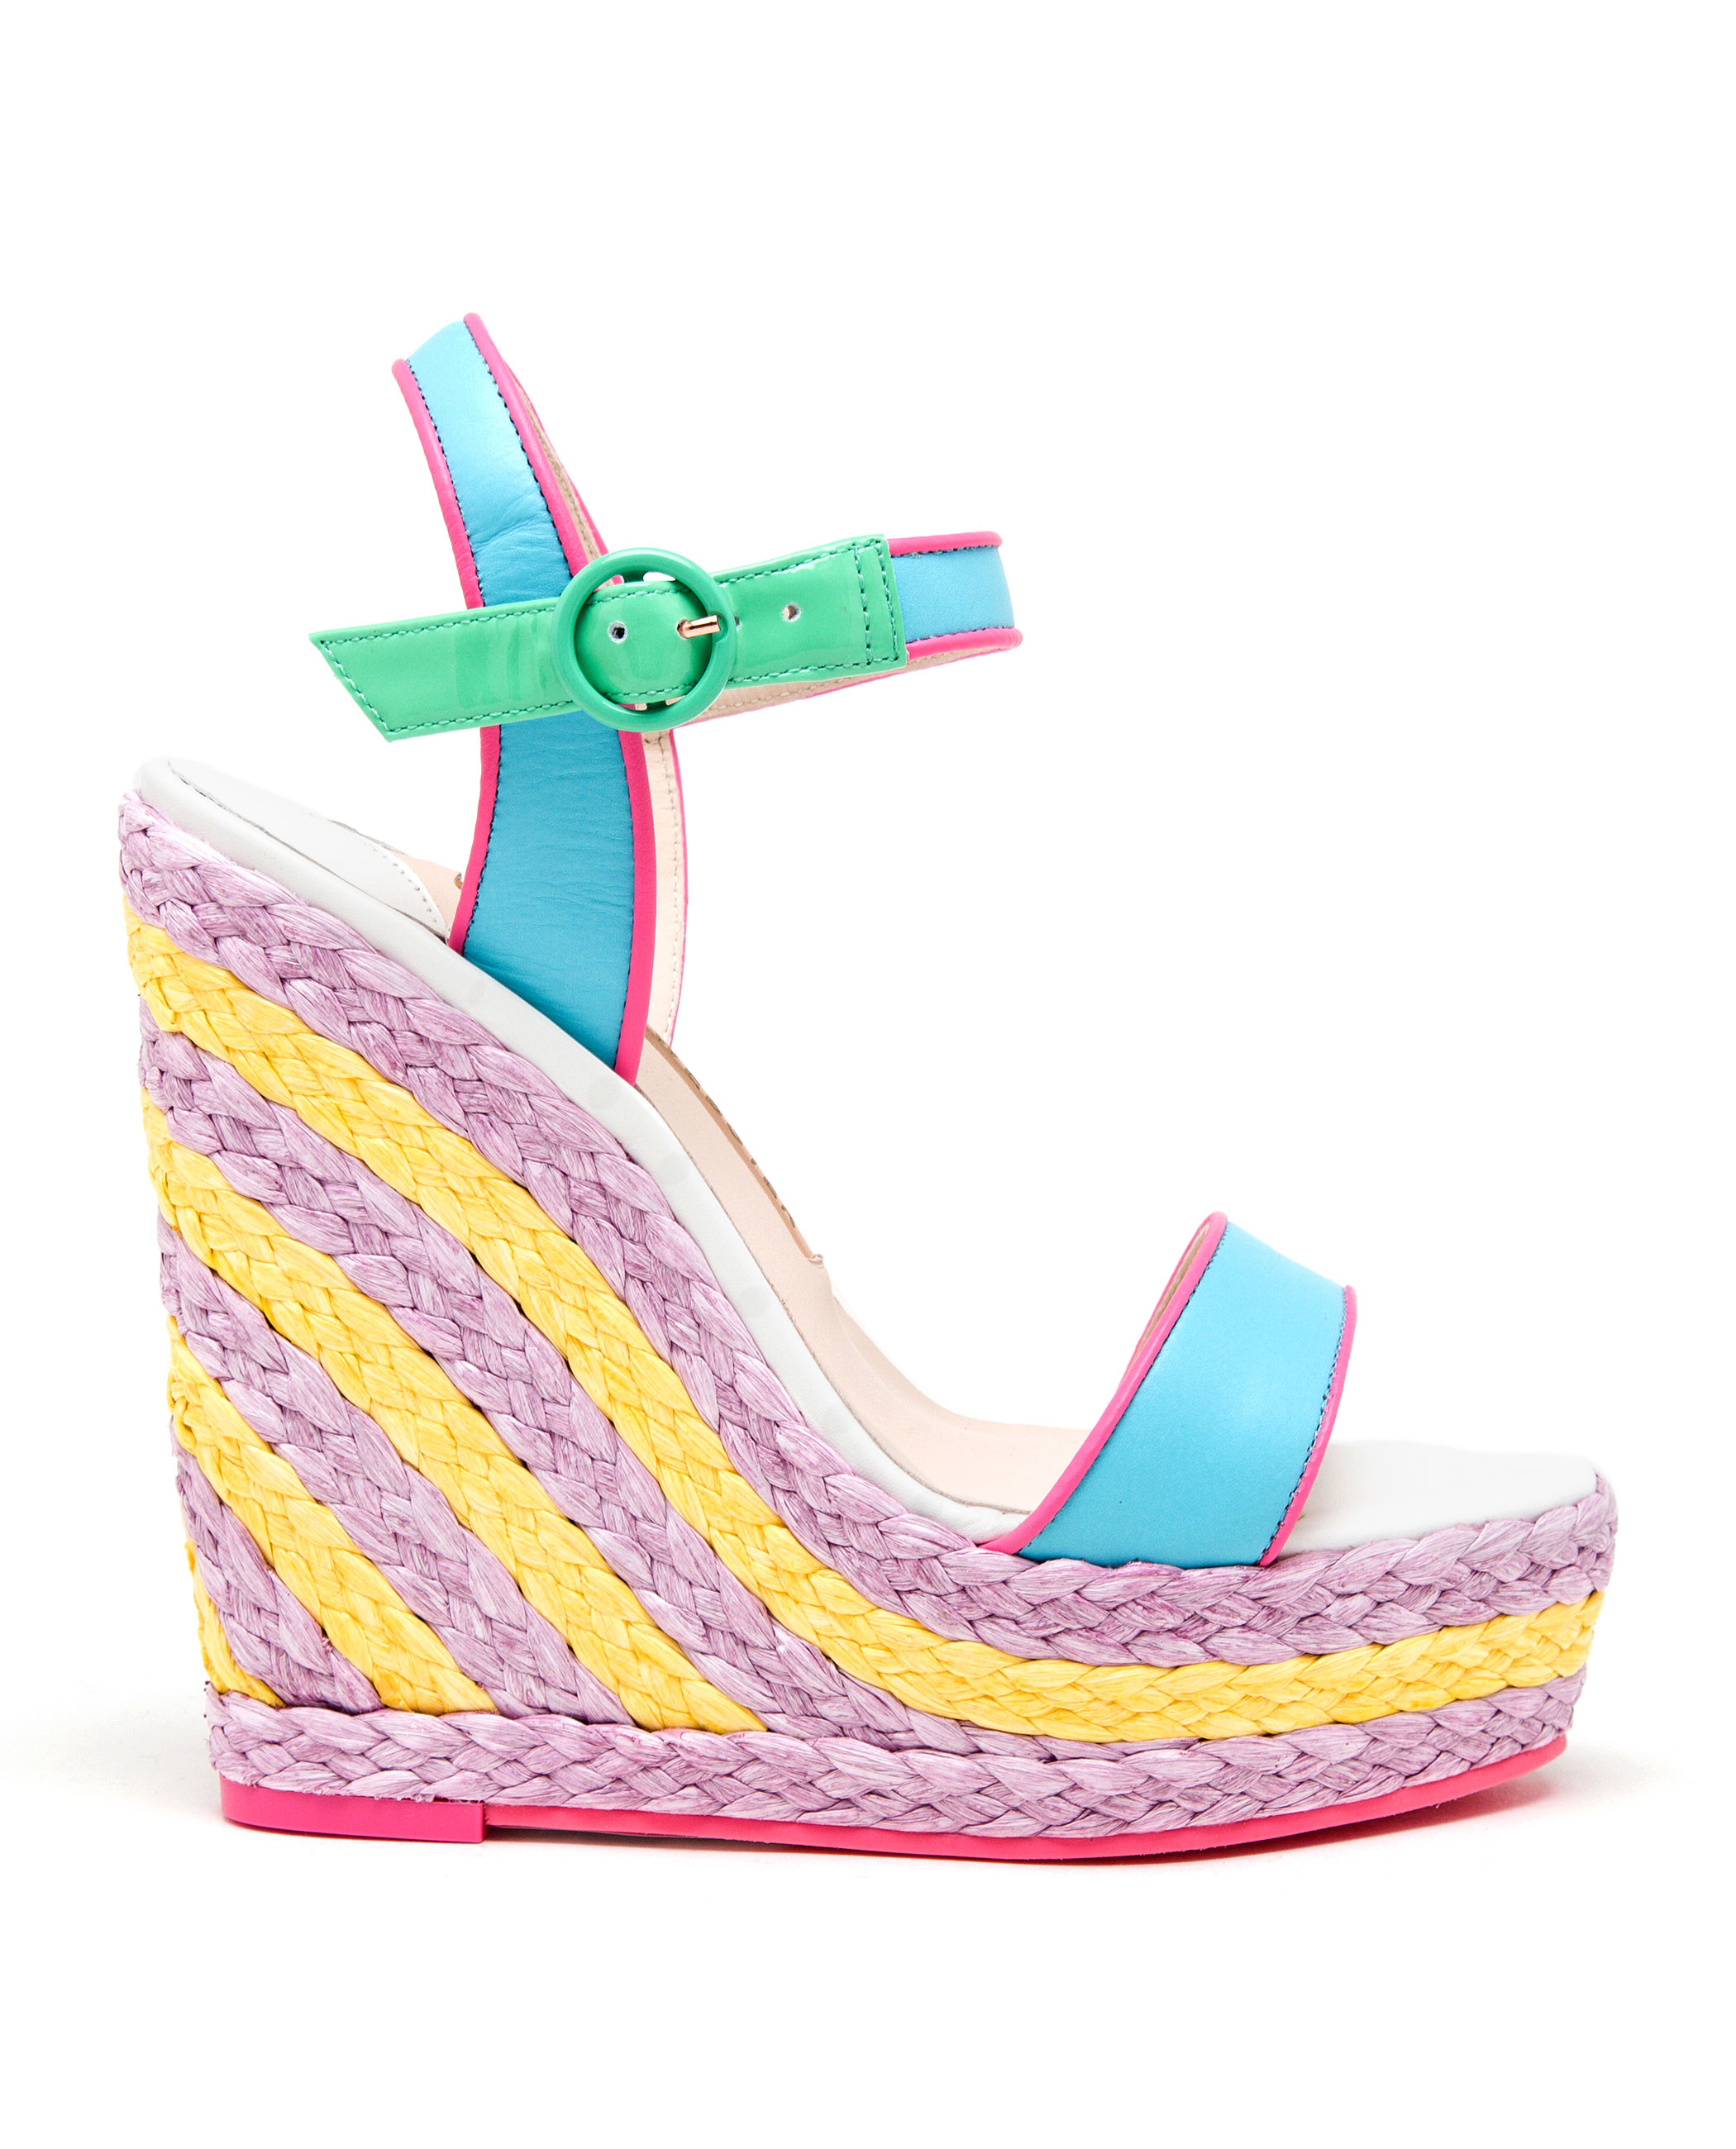 8c371a9fac784 Manchester Sophia Webster Lucita Embellished Wedges cheap sale big discount  AbfQi